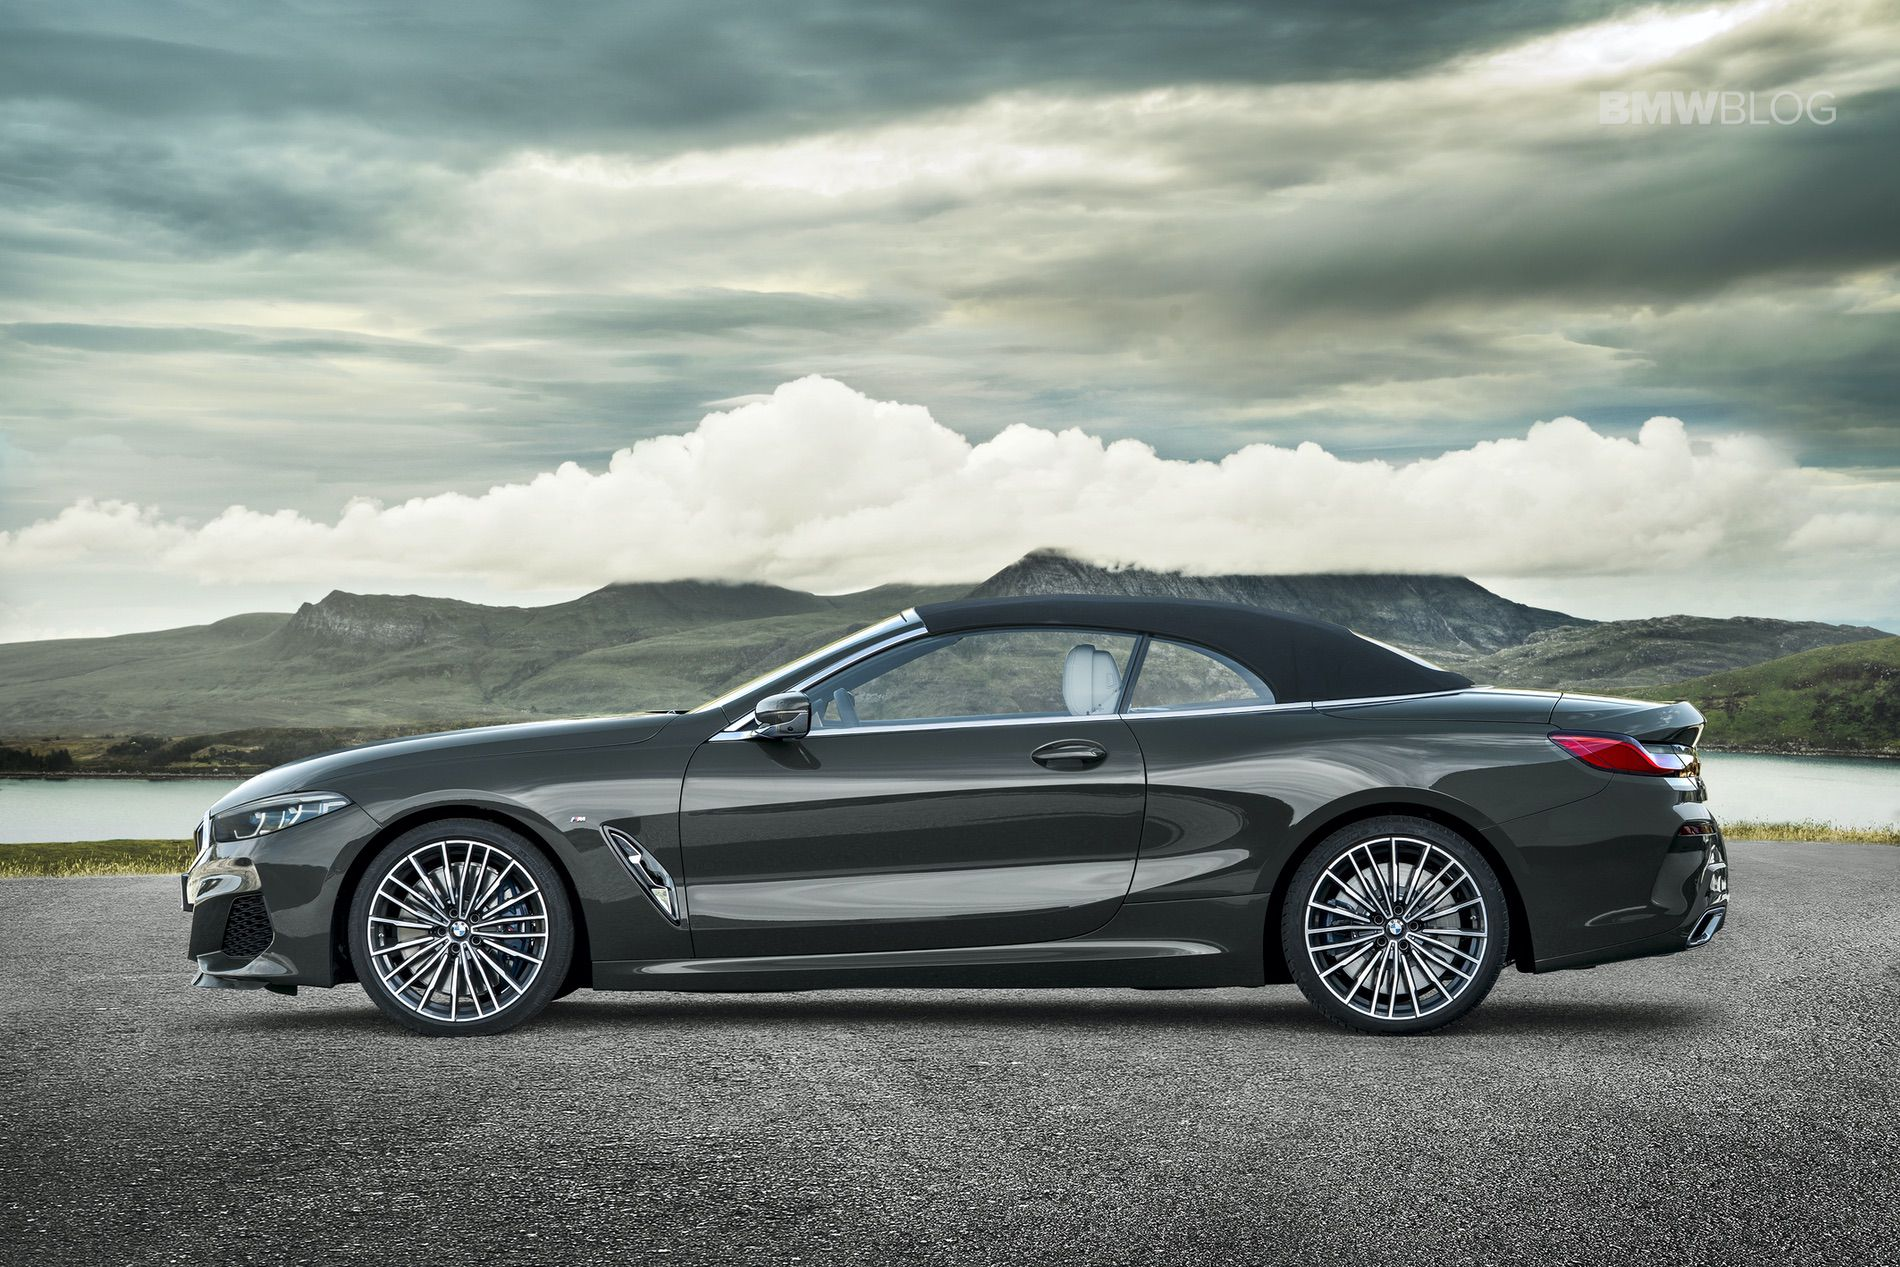 BMW 8 Series Convertible images 30